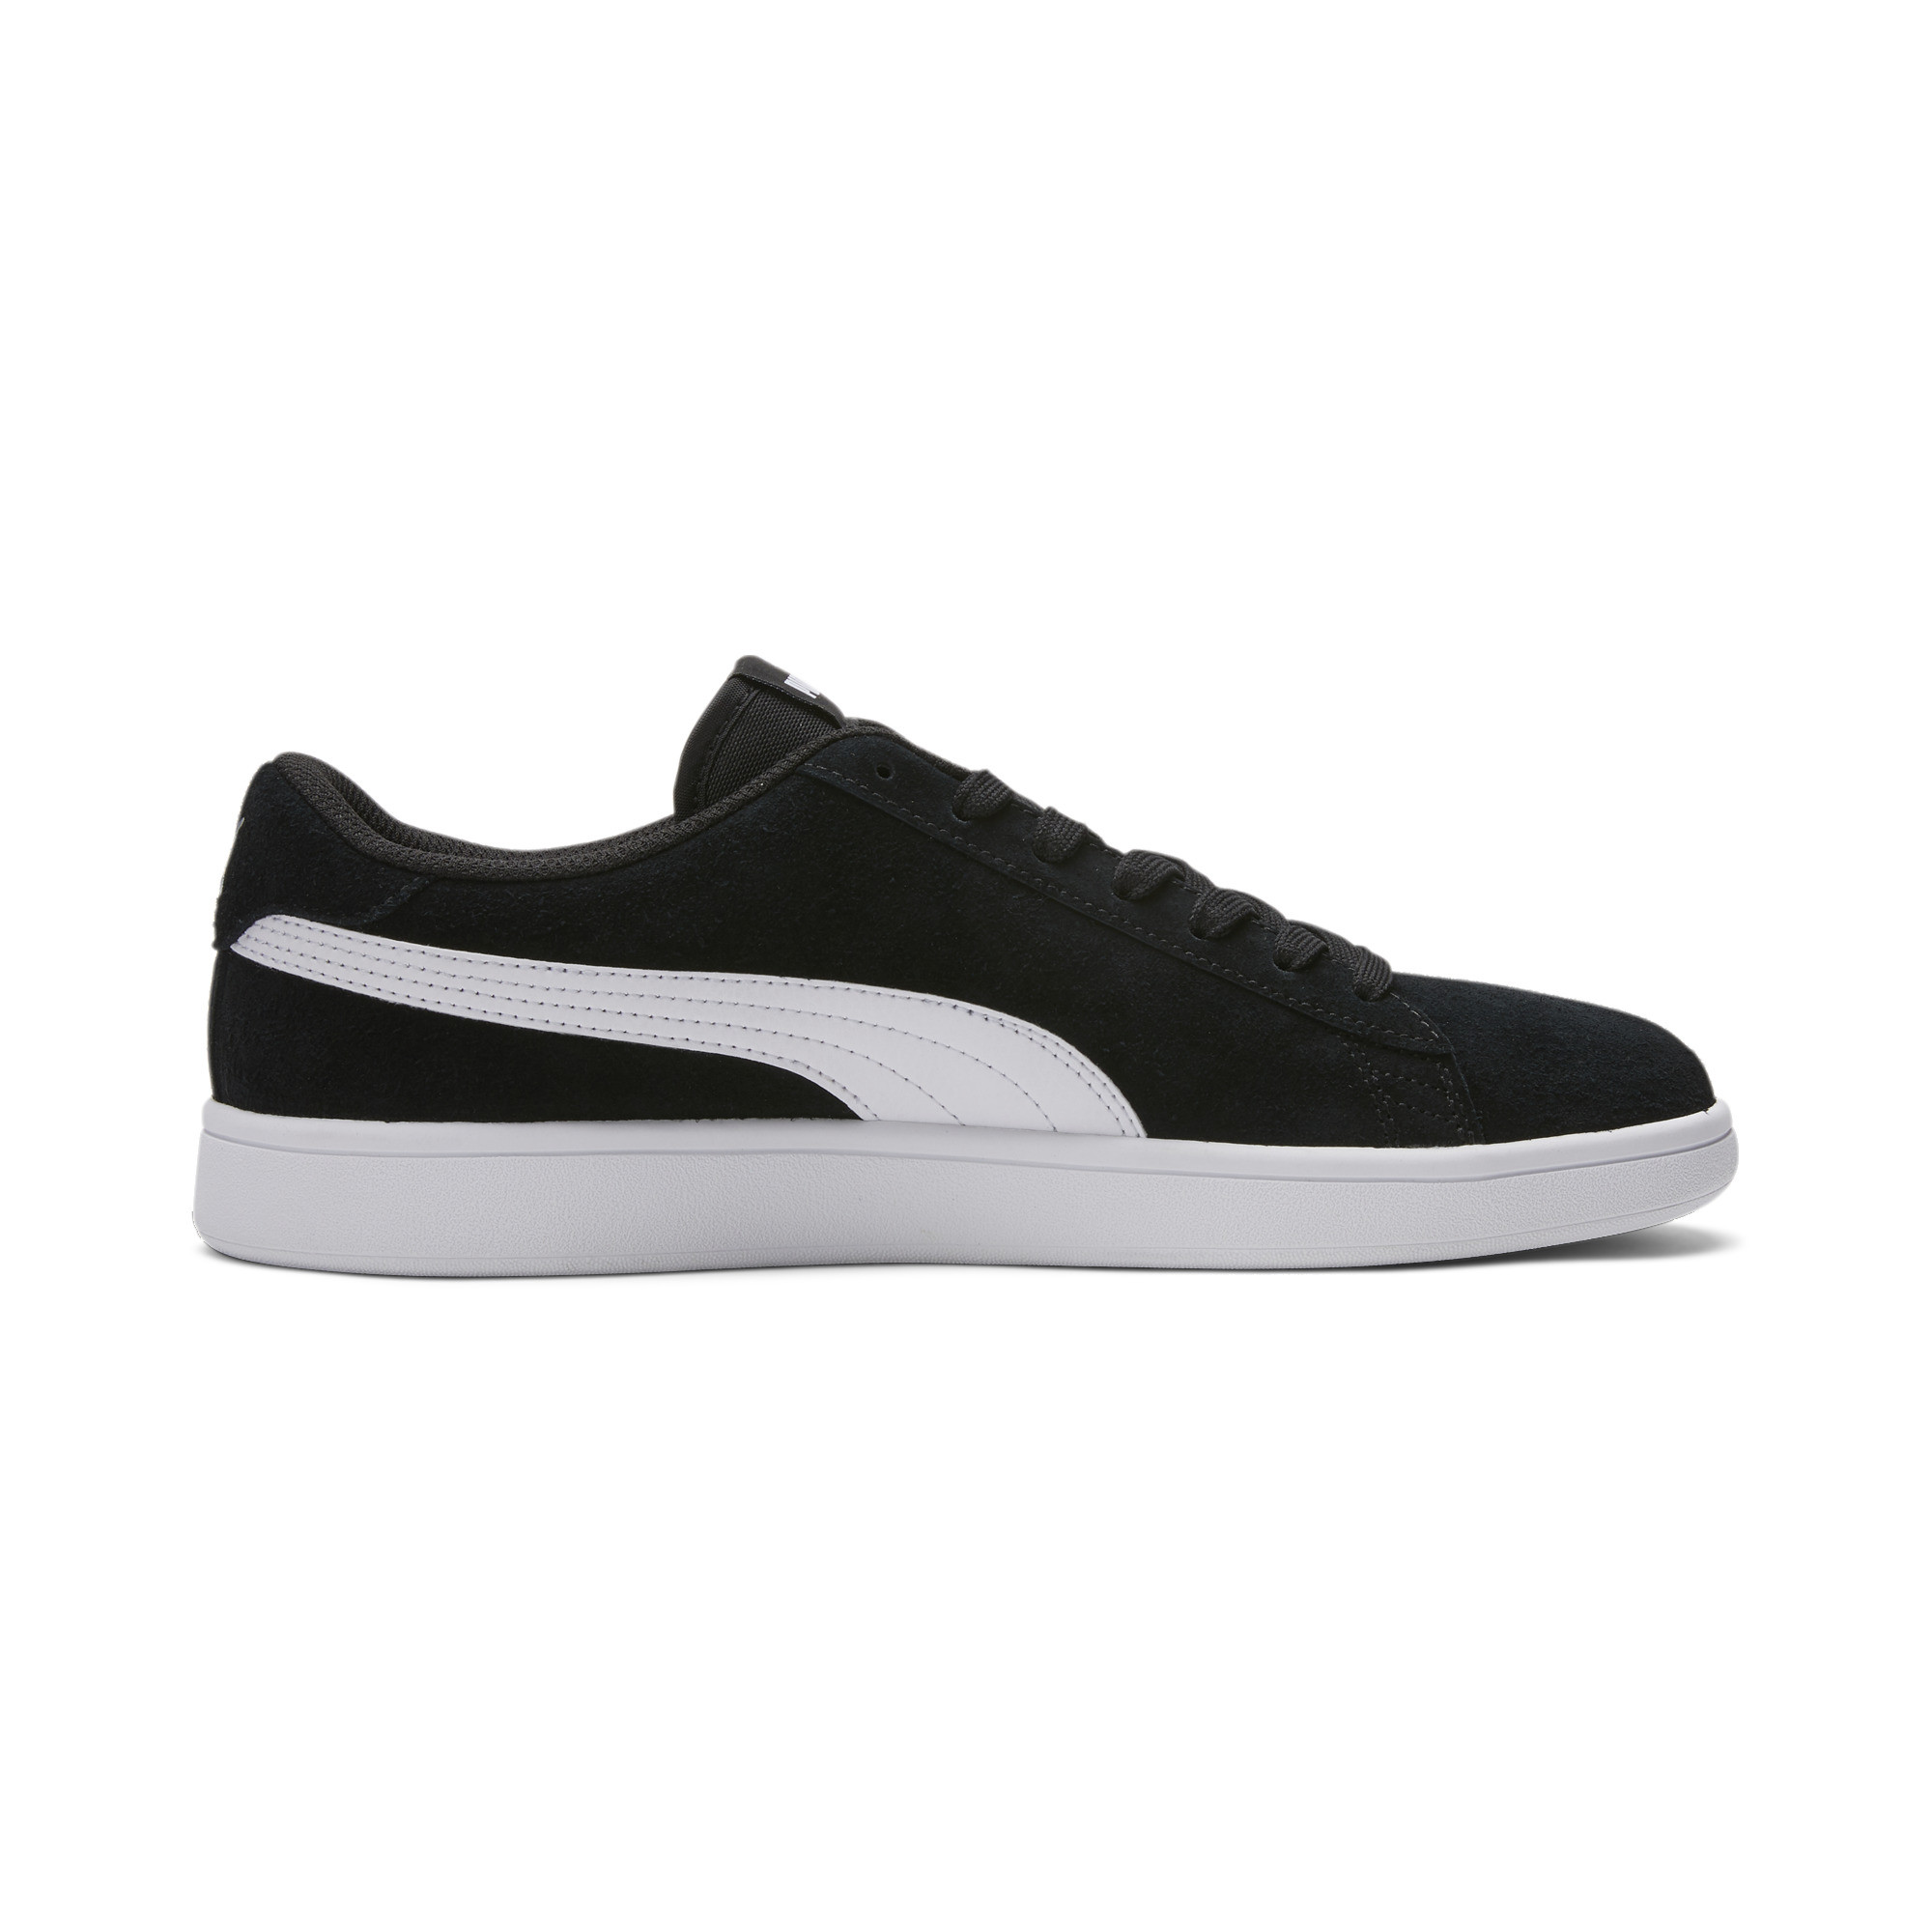 PUMA-PUMA-Smash-v2-Men-039-s-Sneakers-Men-Shoe-Basics thumbnail 8